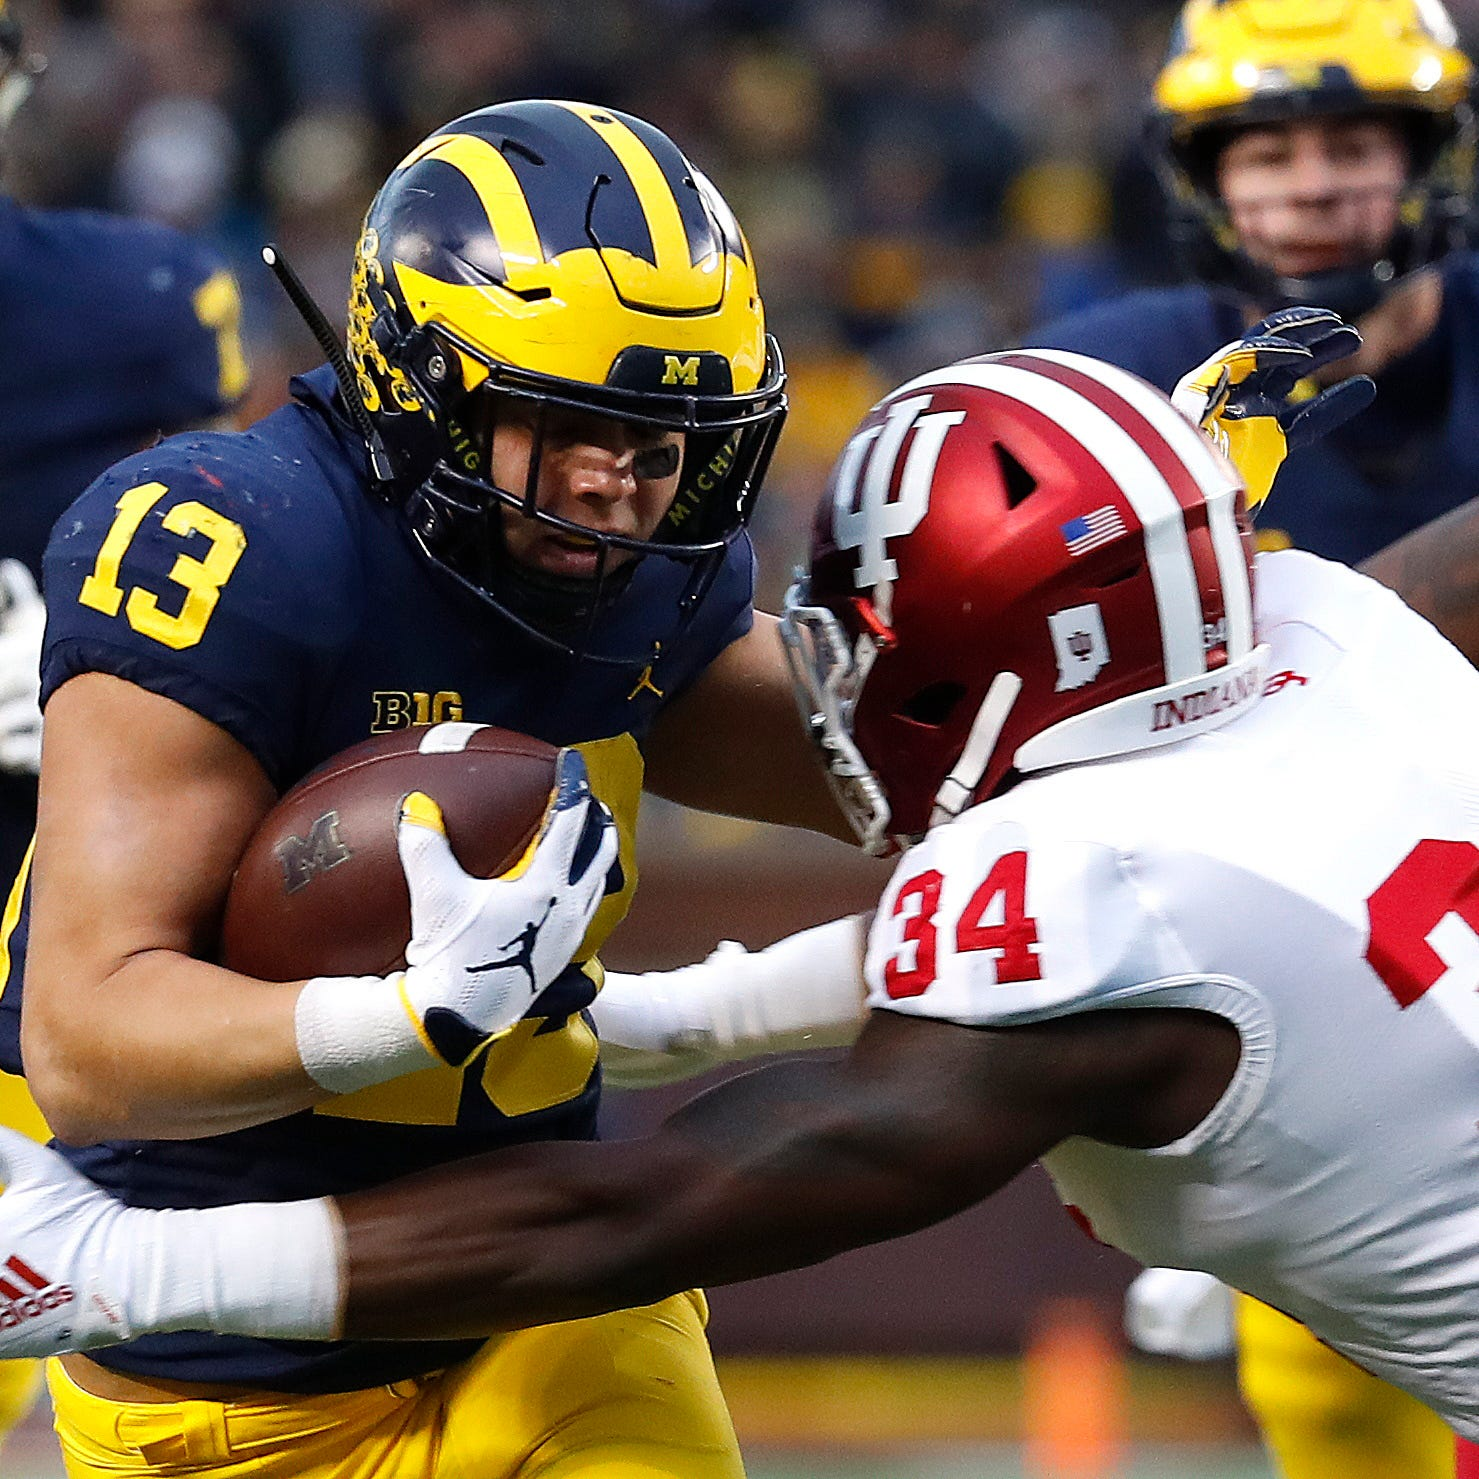 IU football's Cam Jones ejected for targeting after hit on Michigan's Berkley Edwards